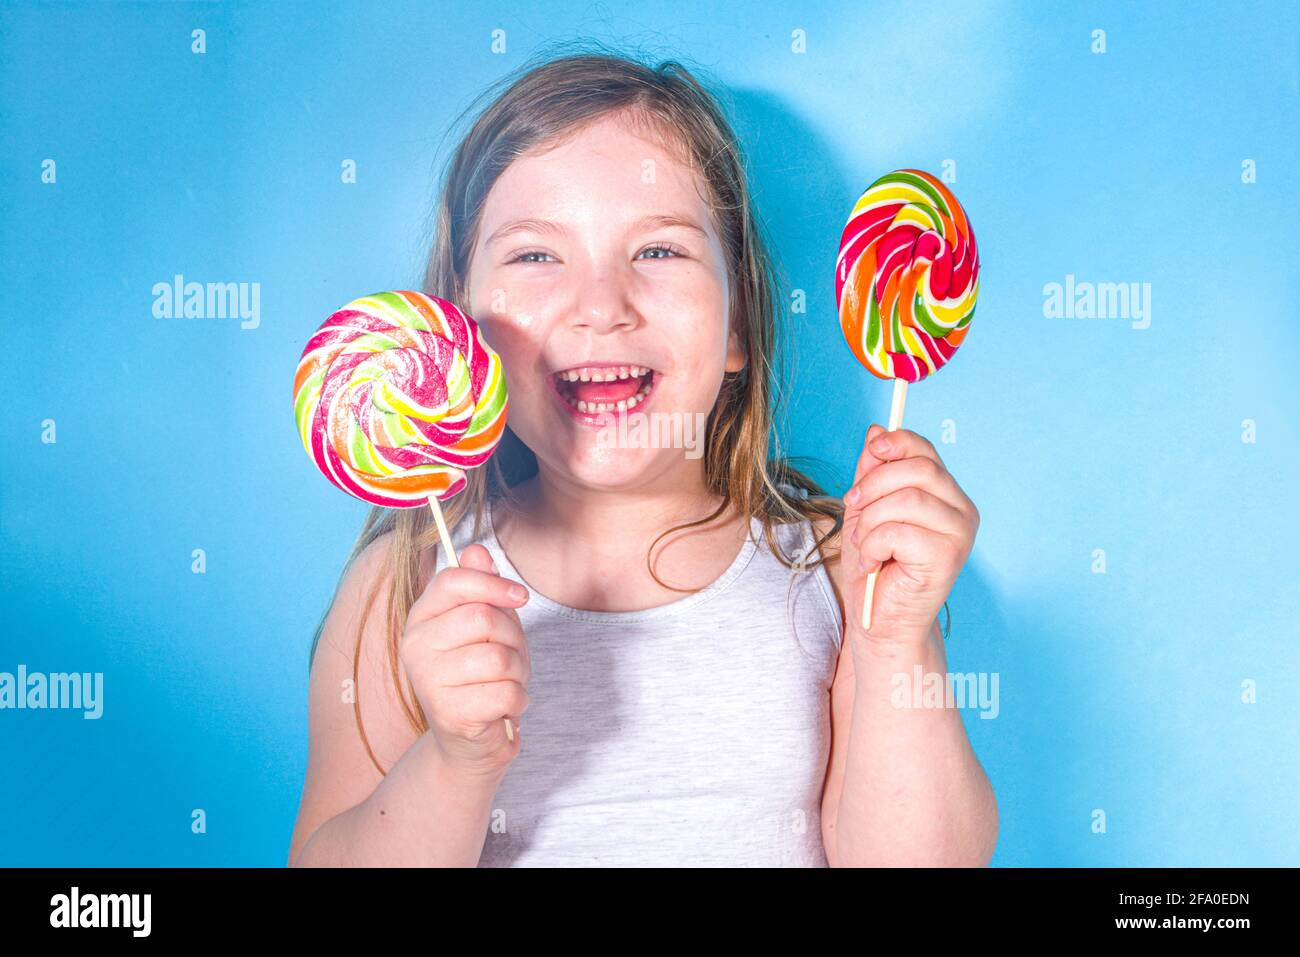 Little happy funny girl with big colorful lollypops, Holiday, happiness, summer vacation concept, Stock Photo